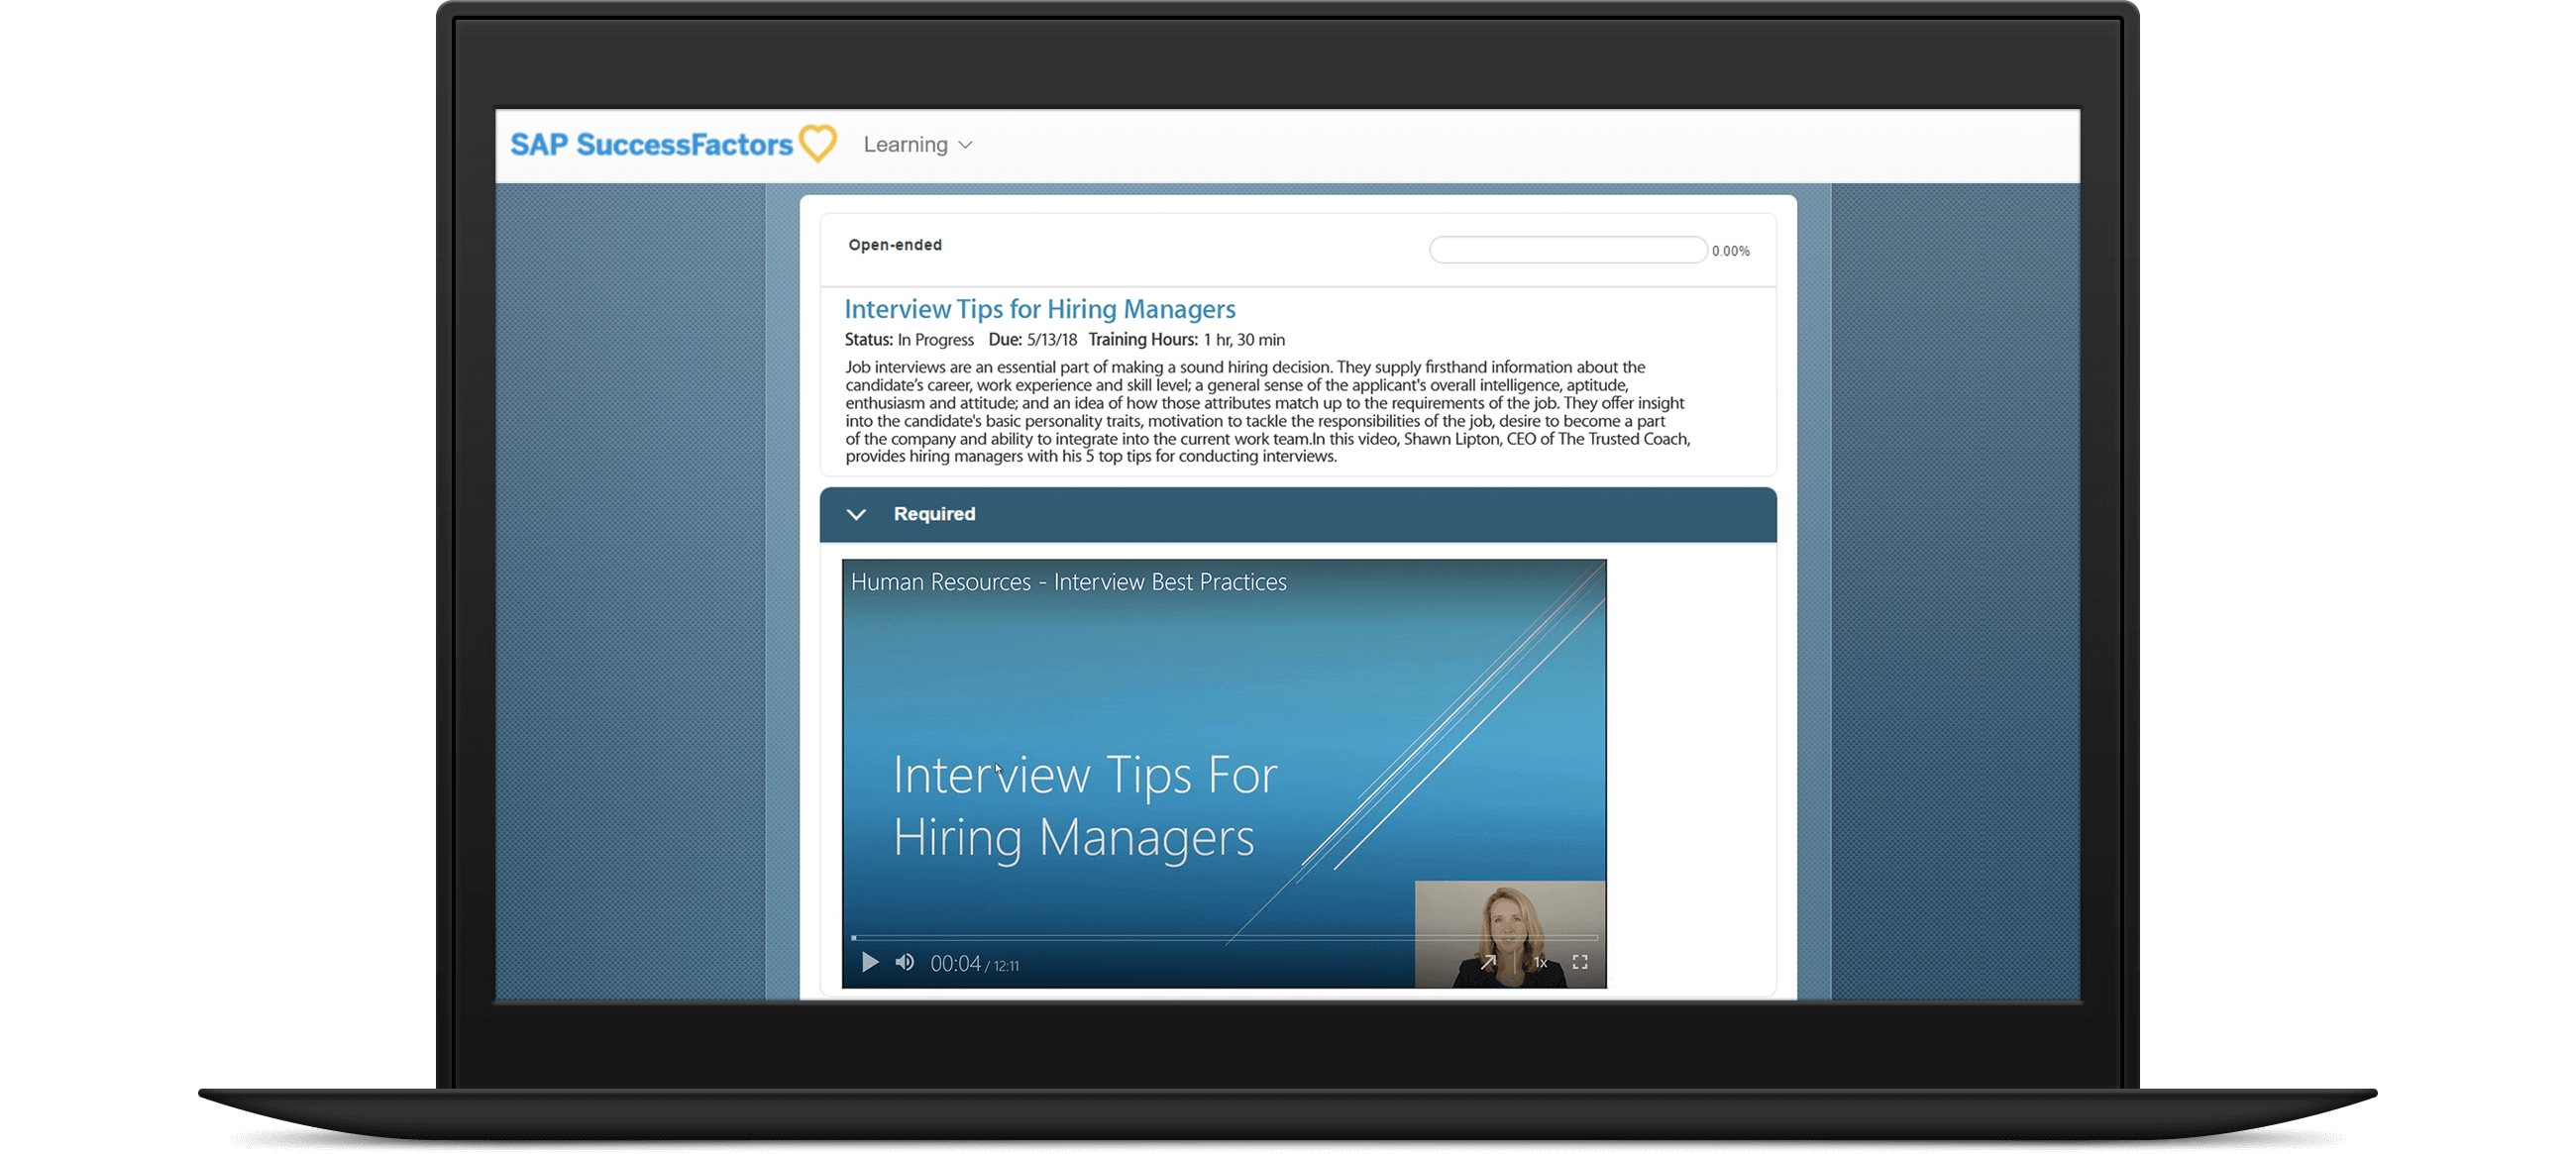 Panopto's SAP SuccesFactors integration enables video playback in your LMS